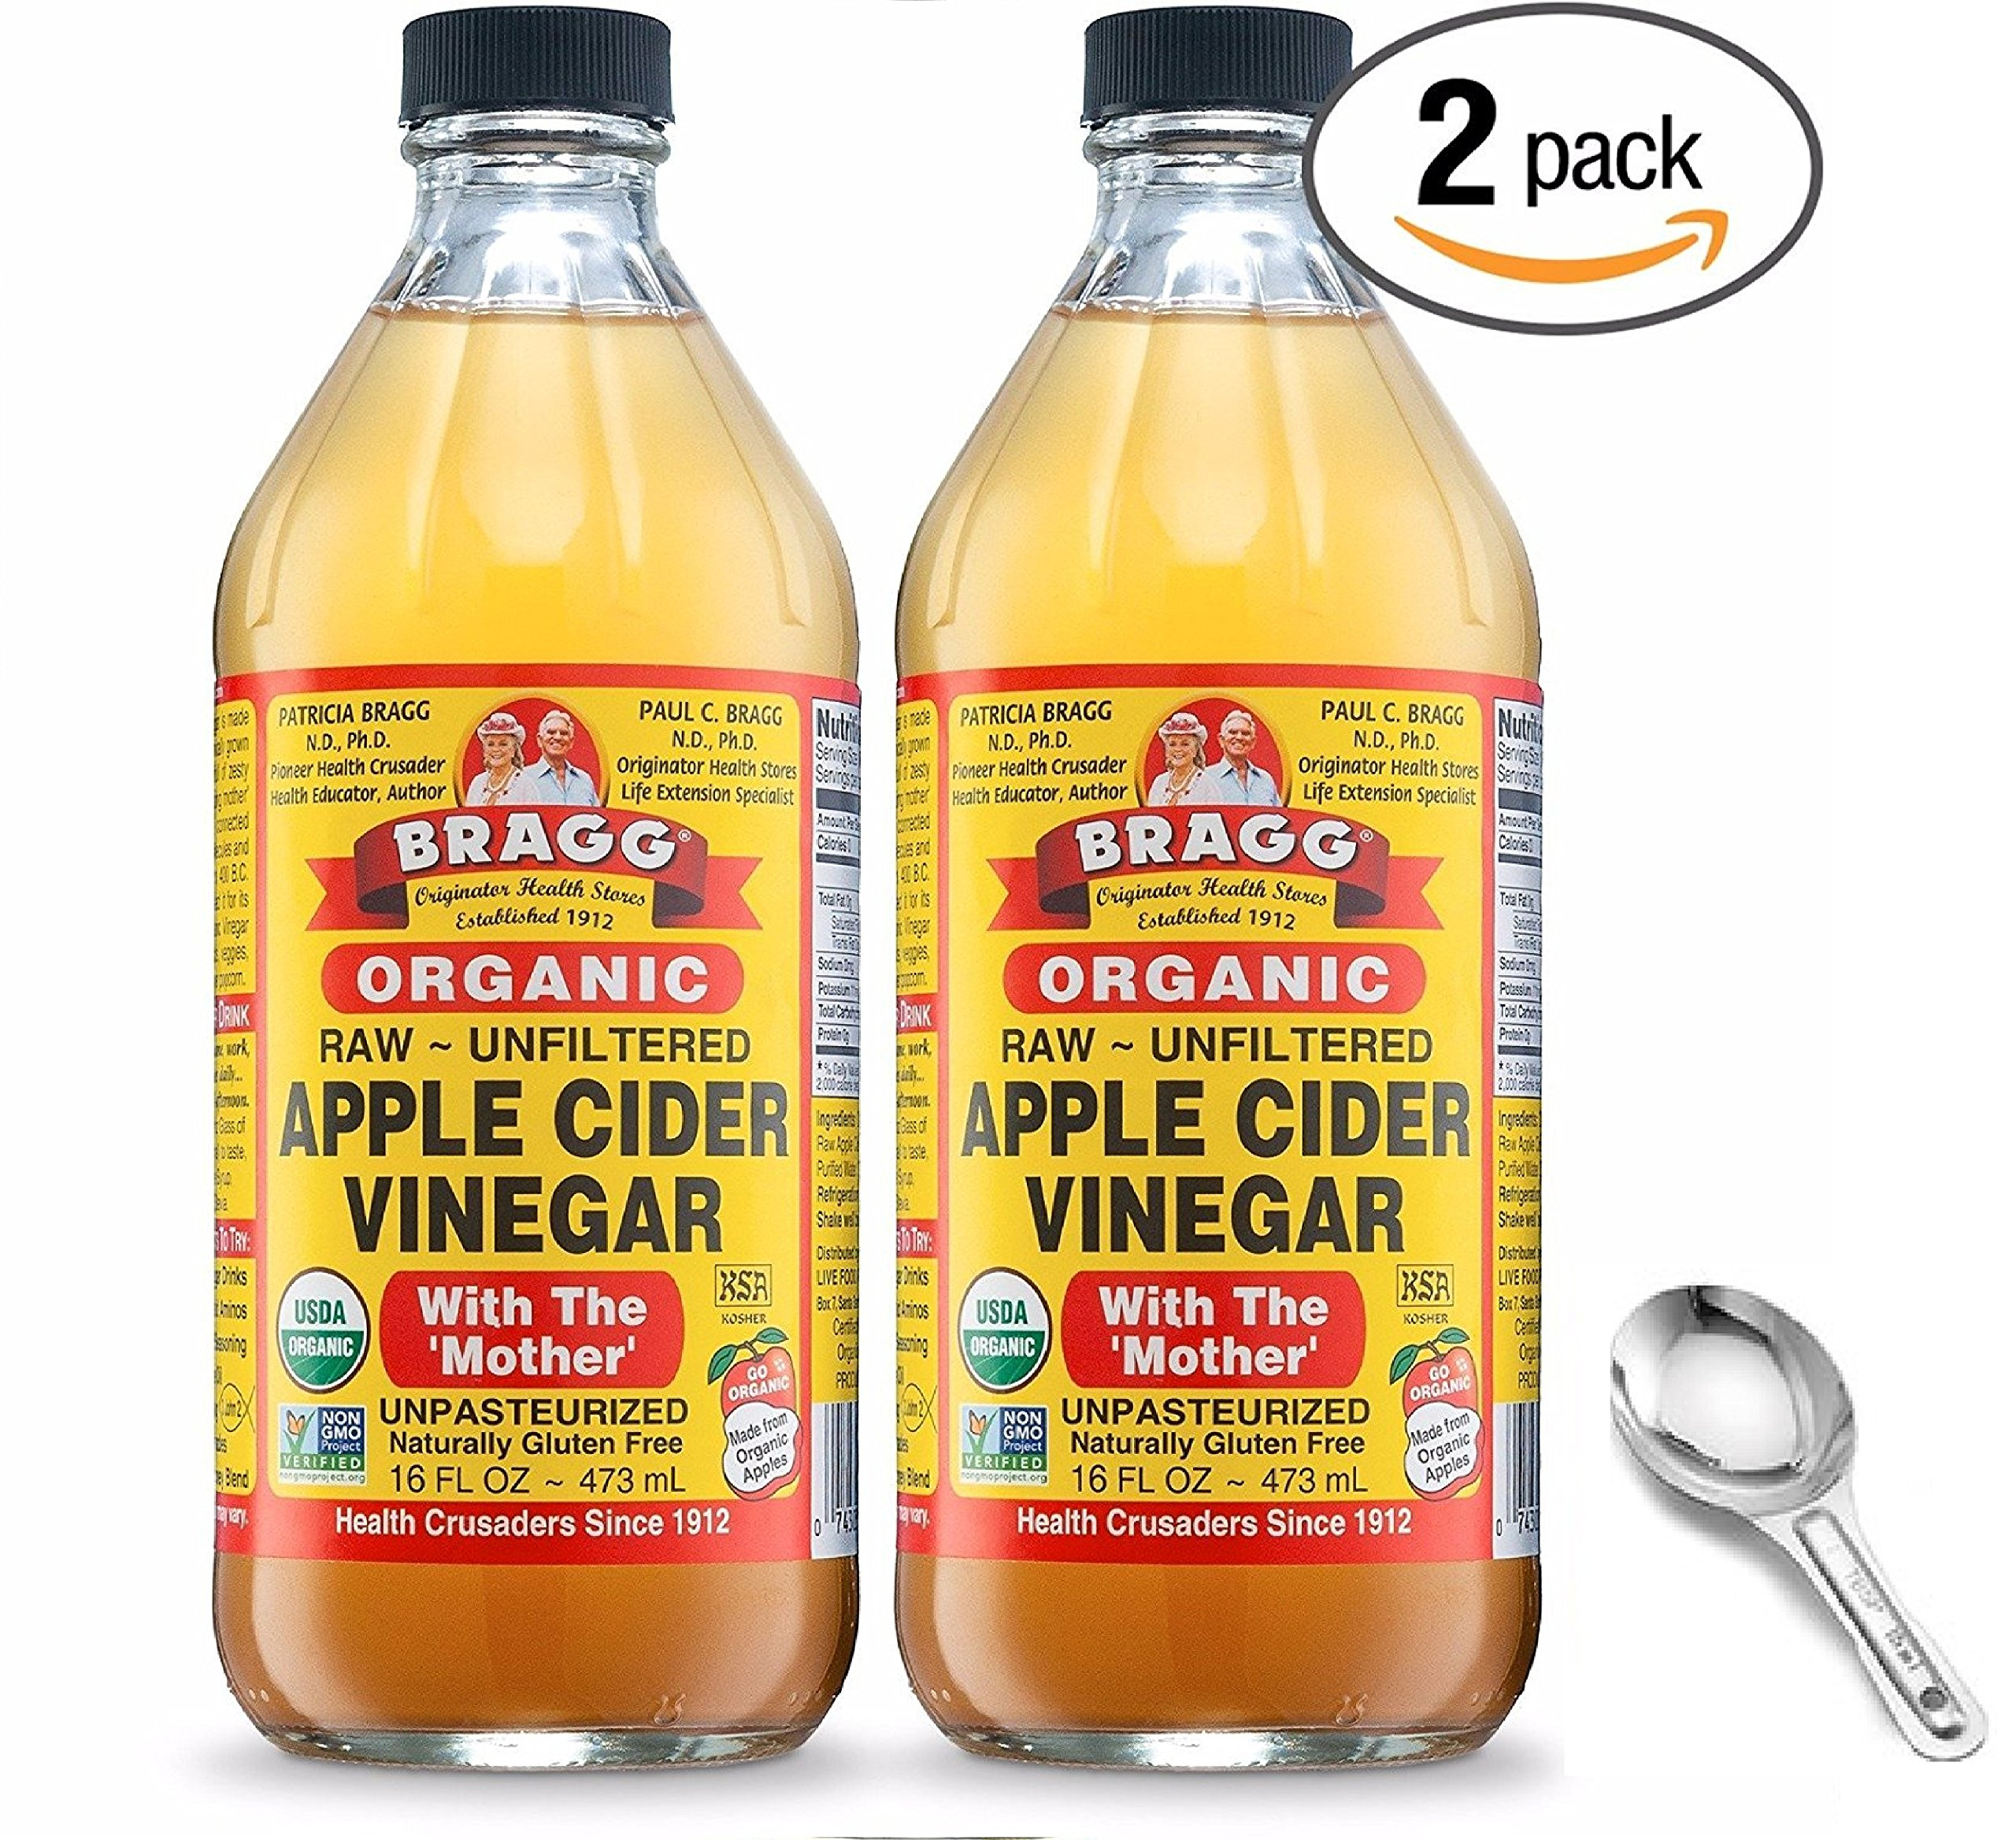 Bragg USDA Organic Raw Apple Cider Vinegar, With The Mother 16 Ounces Natural Cleanser, Promotes Weight Loss - Pack of 2 w/Measuring Spoon